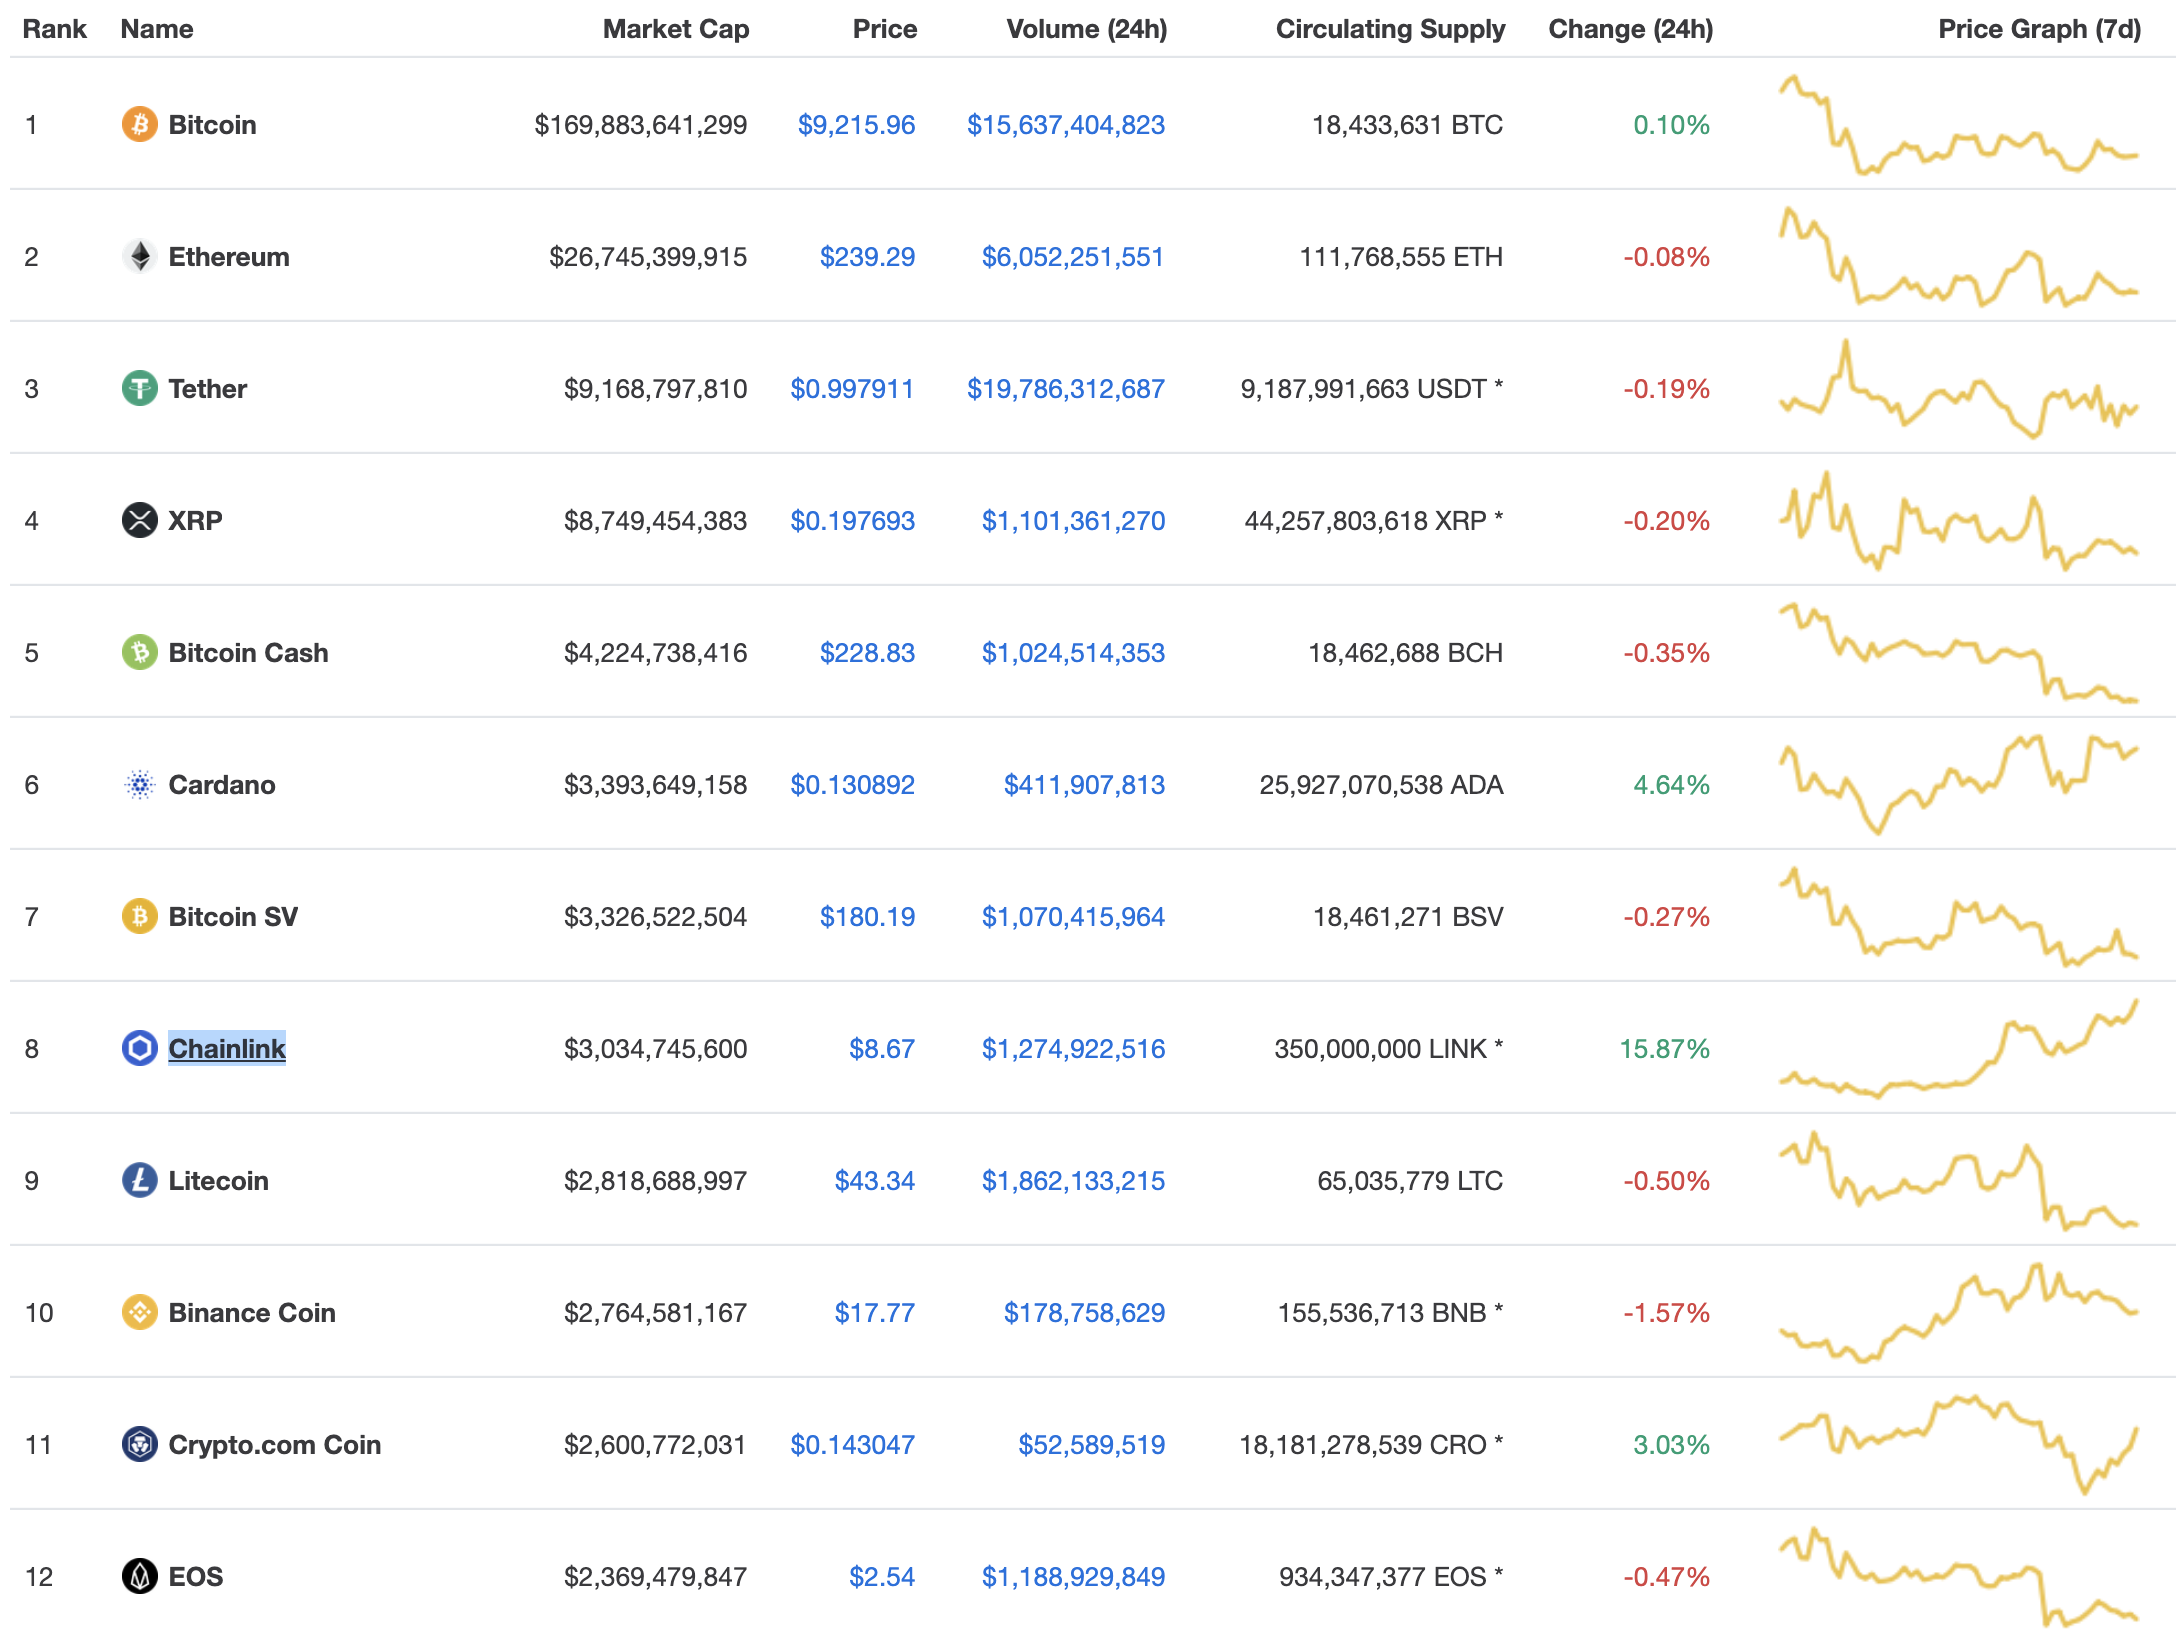 Top cryptos by market cap, July 2020